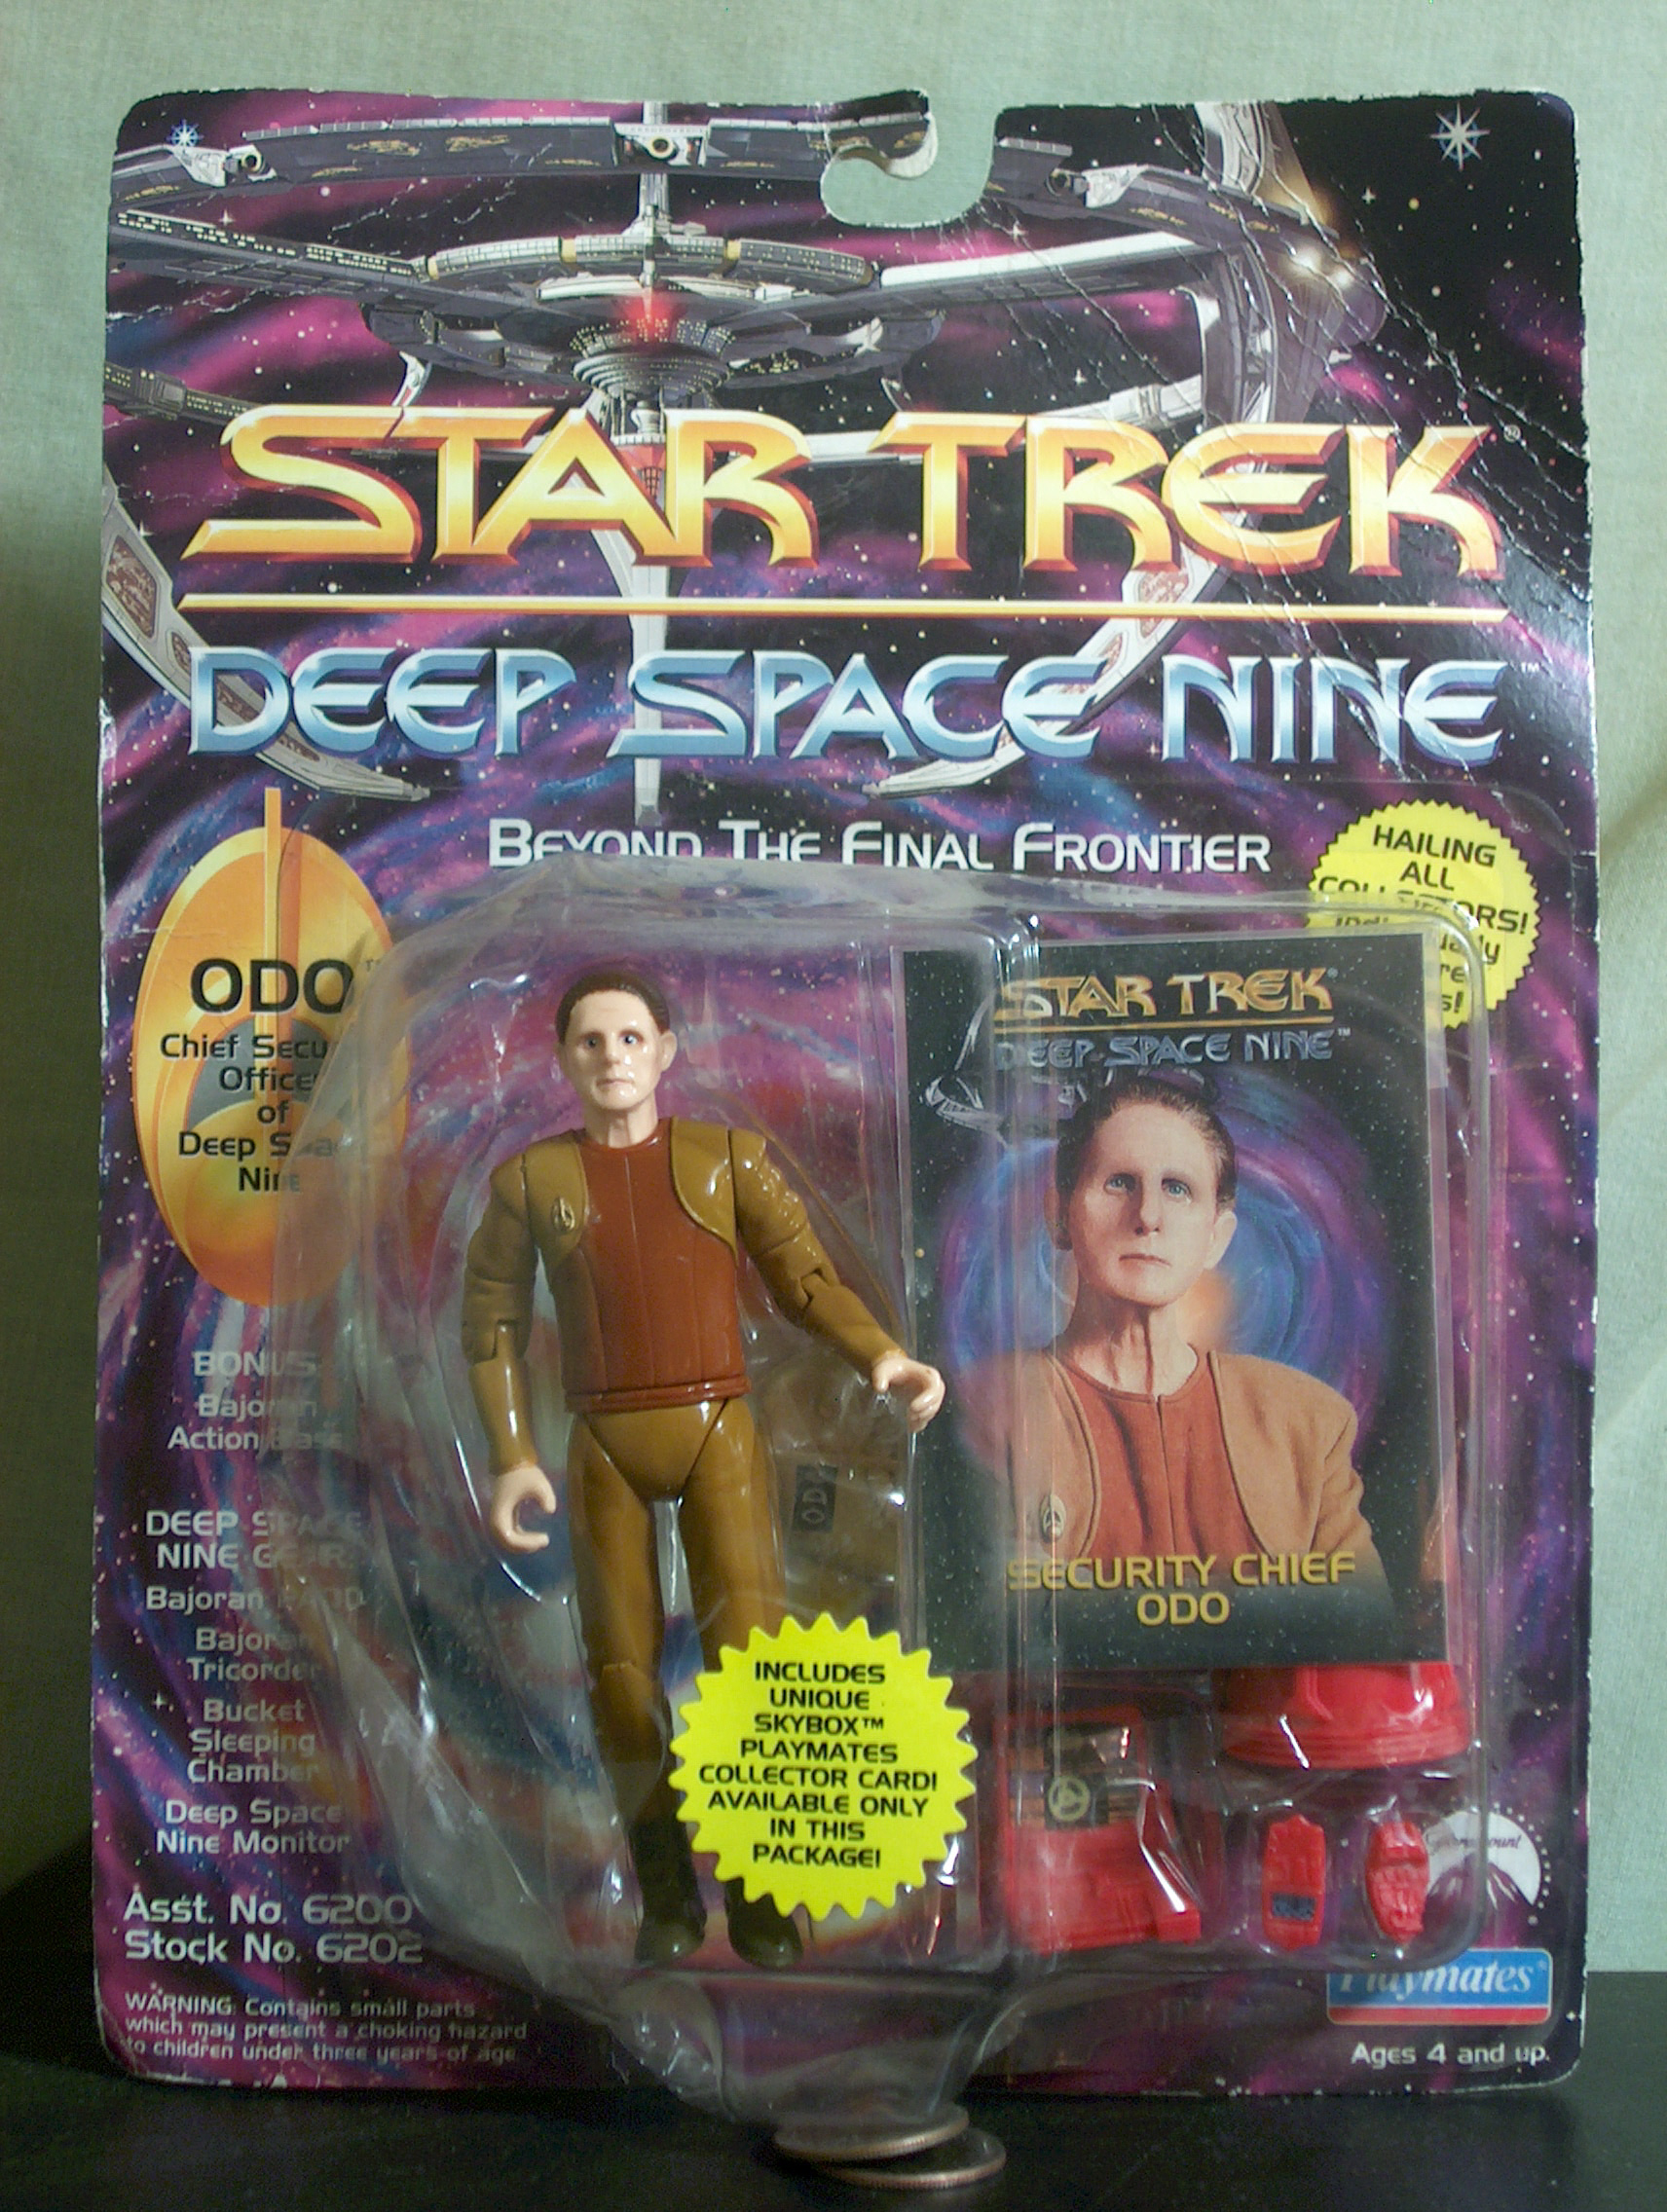 Odo Chief Security Officer of Deep Space Nine